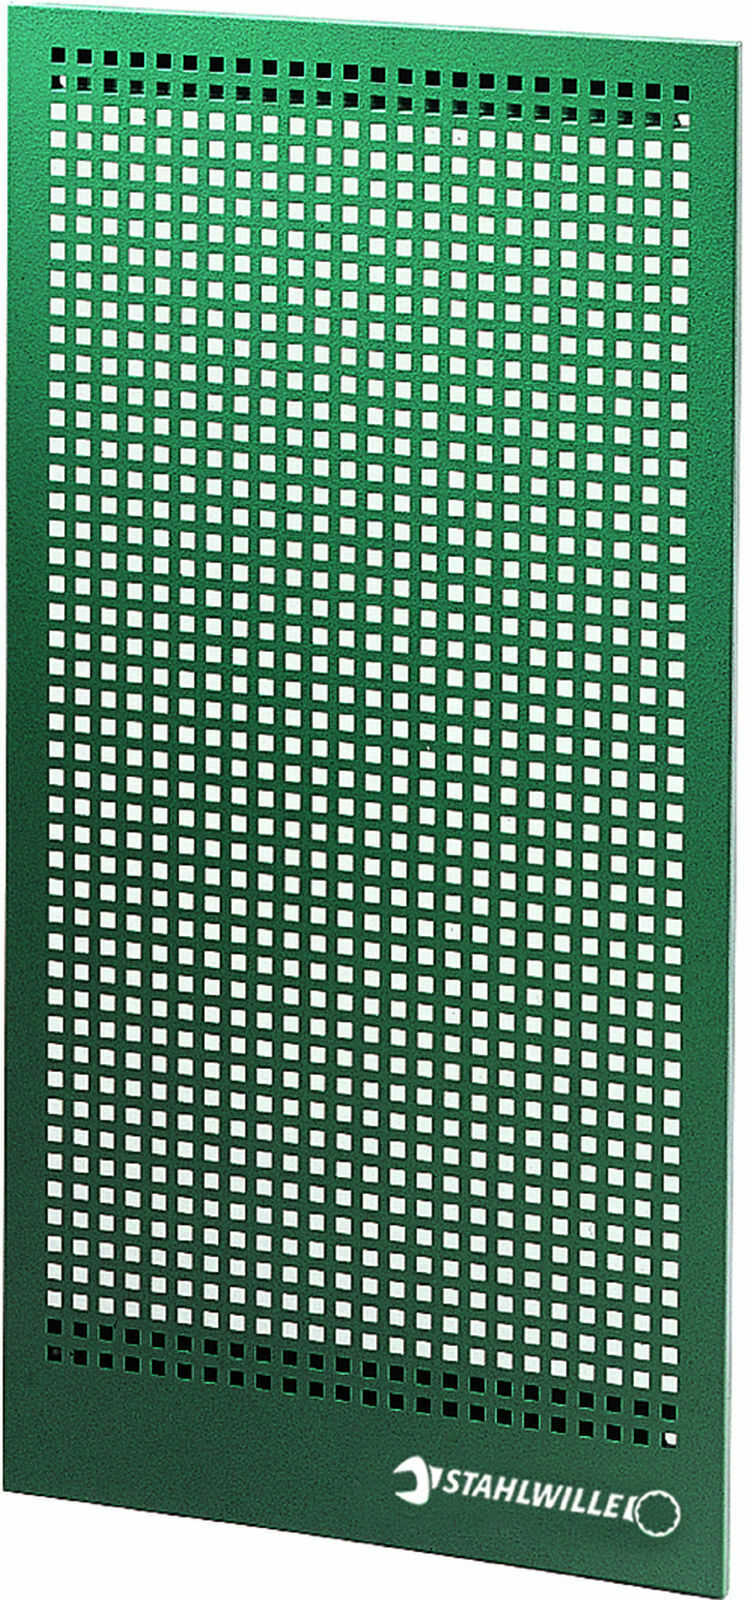 Stahlwille PERFORATED PANEL 80020001 8002 GRUEN